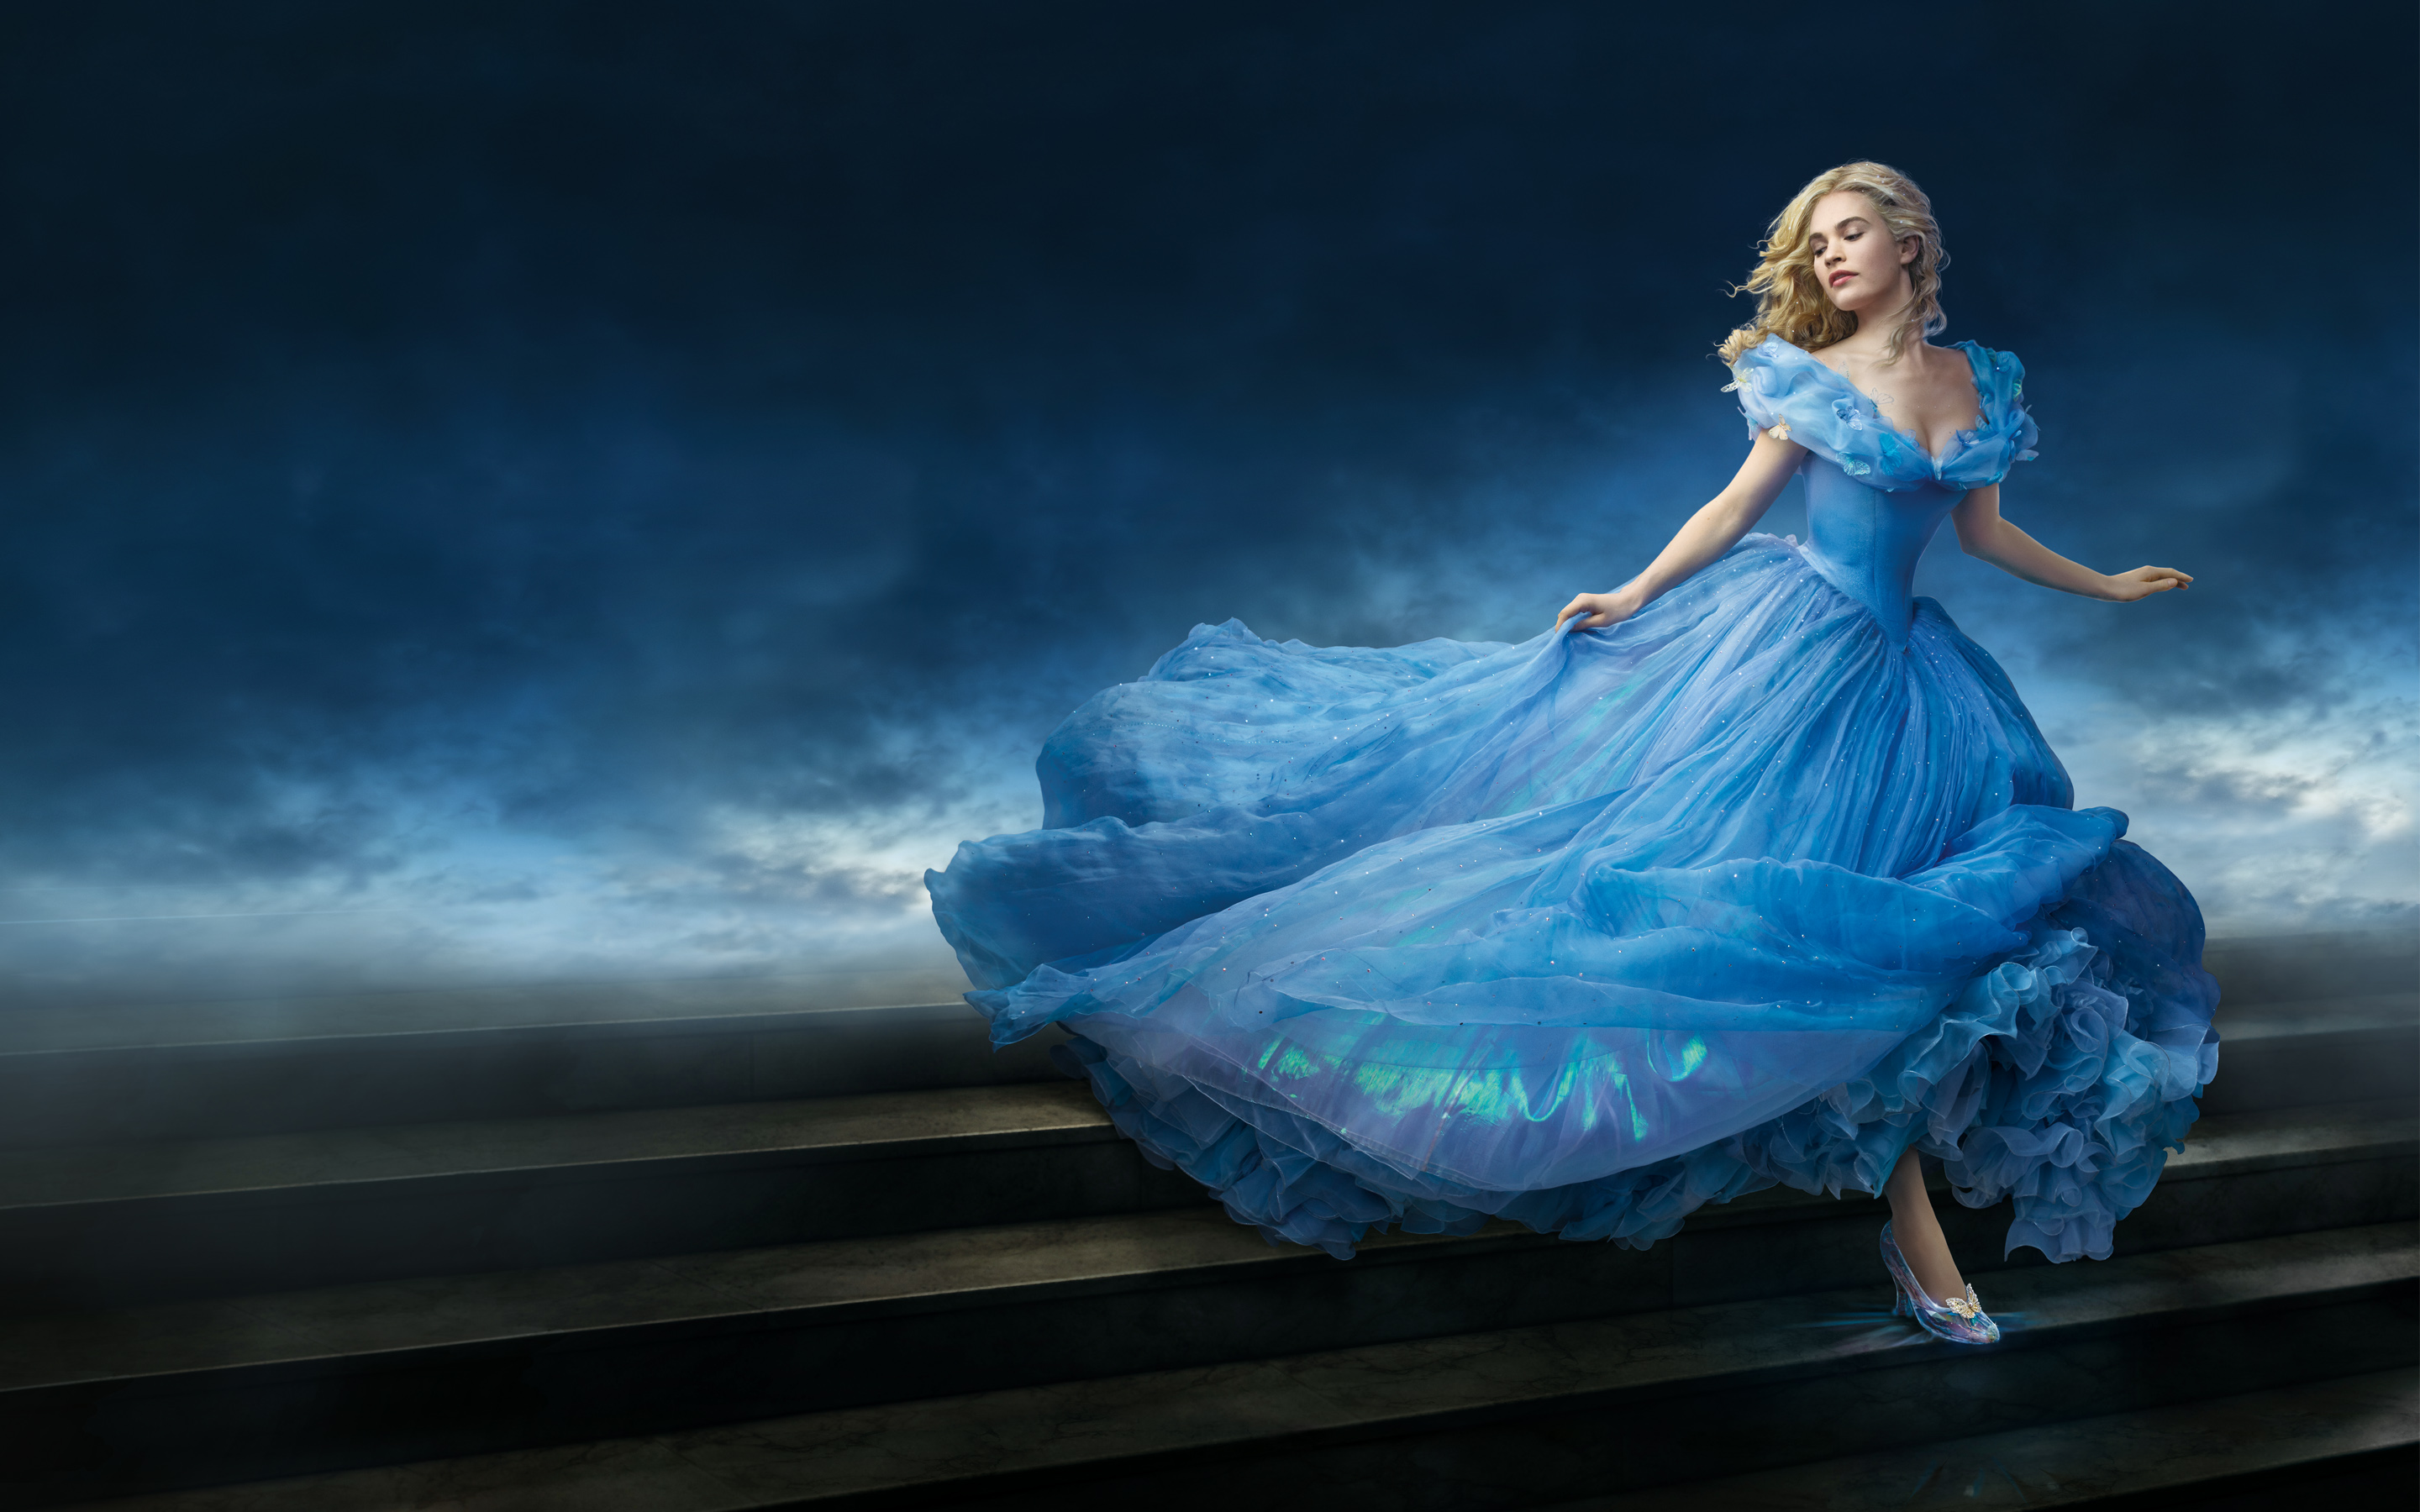 HD Wallpapers Lily James as Cinderella